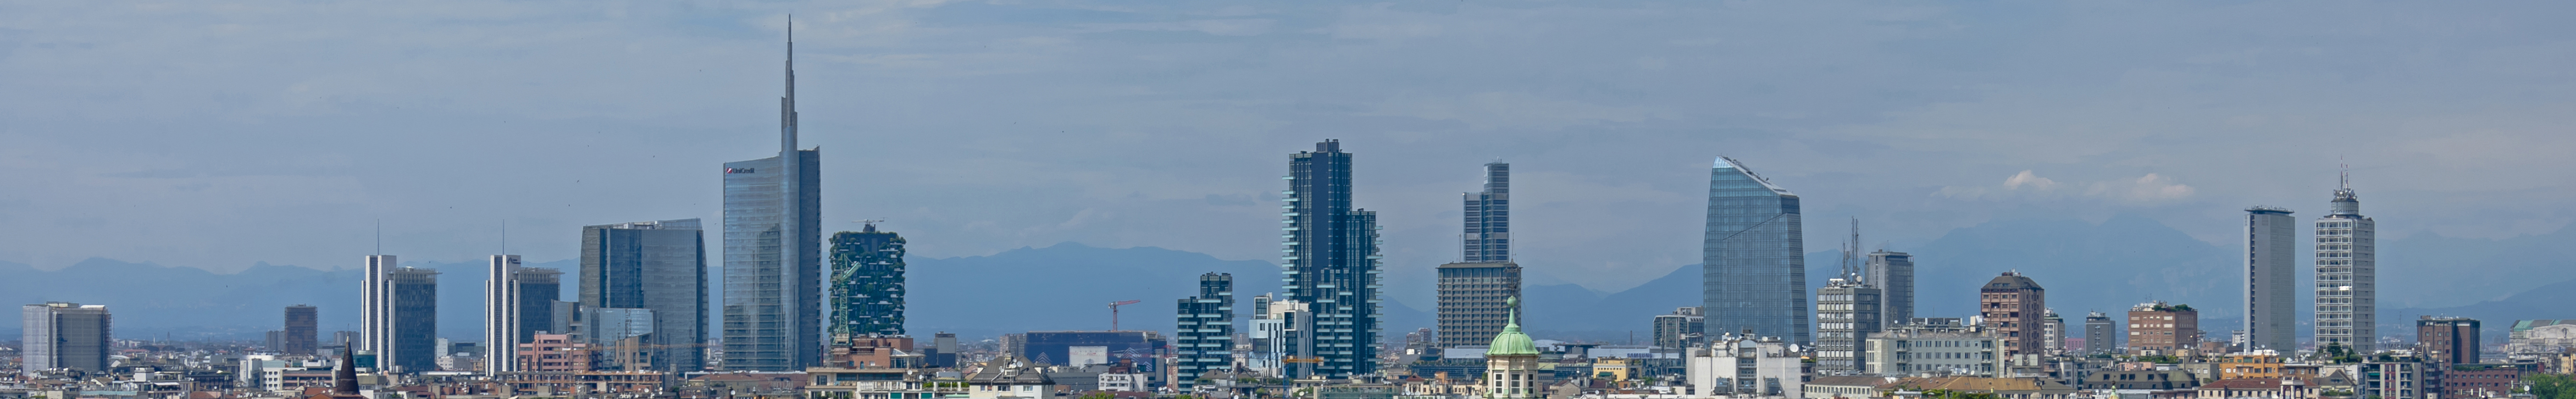 Skyline of Milan, capital of Lombardy, Italy.